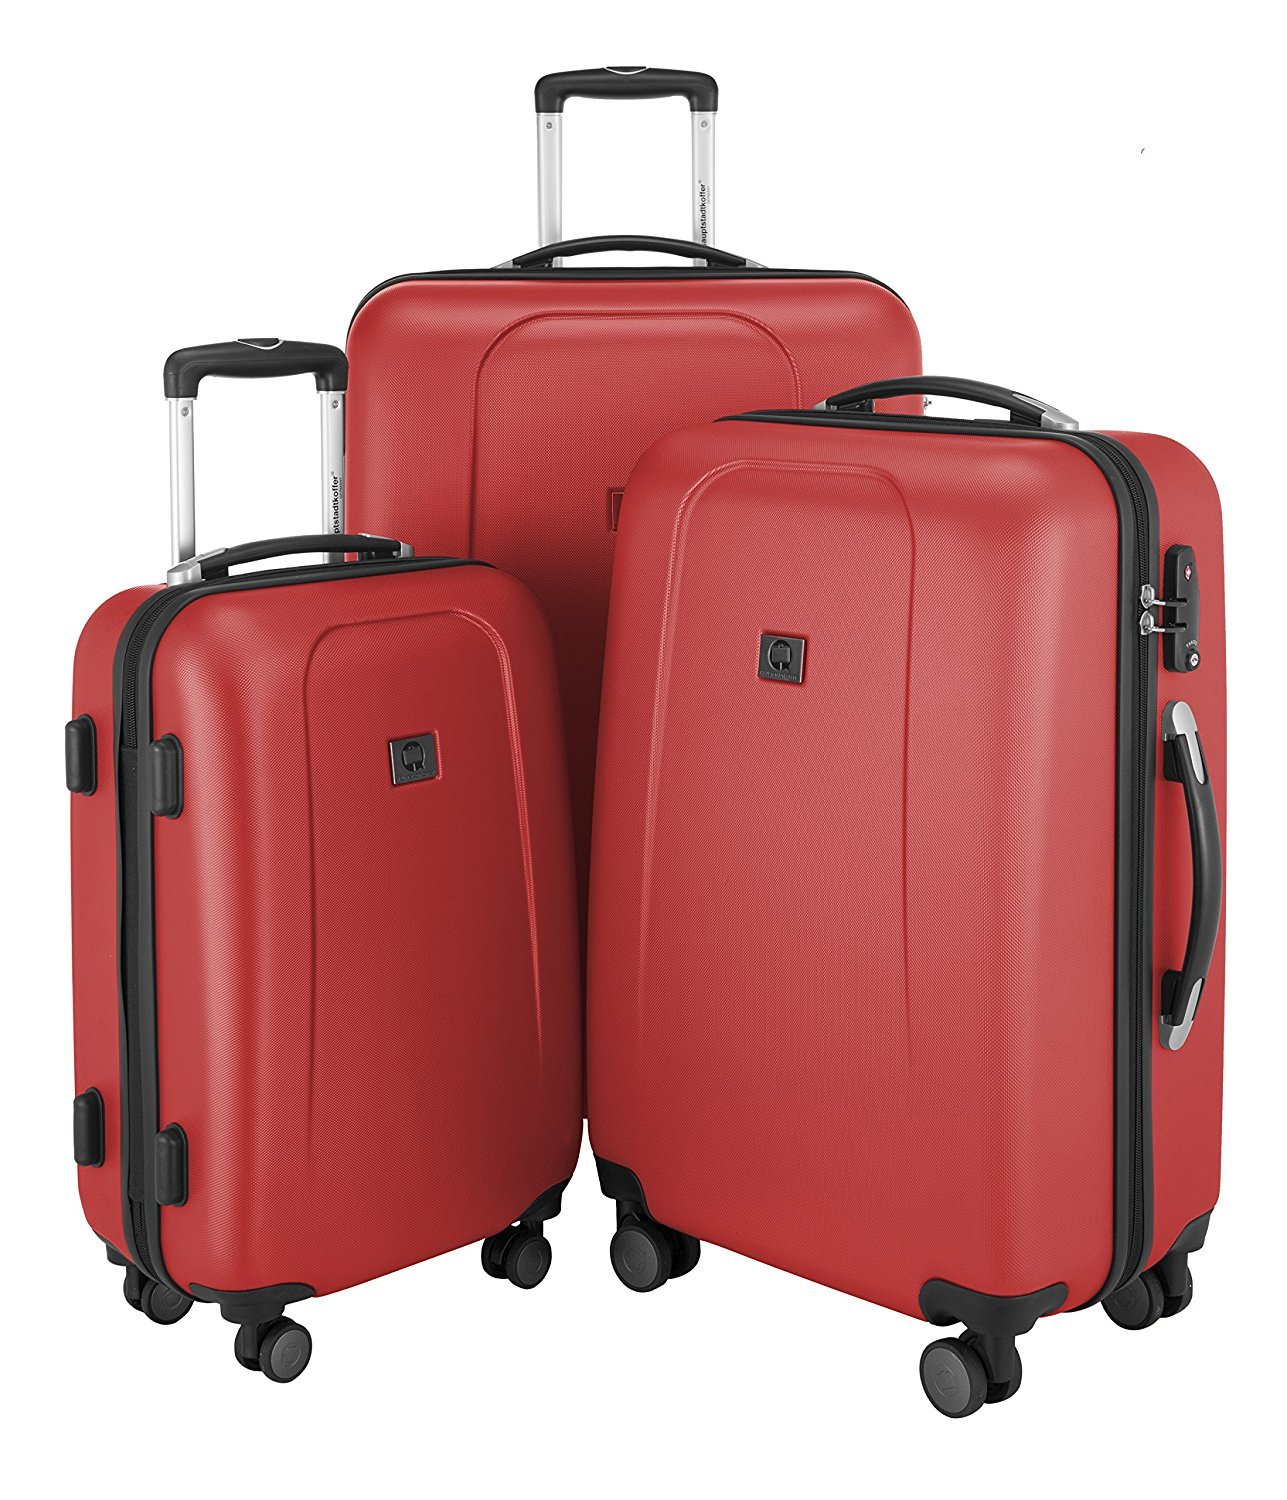 "HAUPTSTADTKOFFER - Wedding - Set of 3 Hard-side Luggage Glossy Suitcase Hardside Spinner Trolley Expandable (20"", 24"" & 28"") TSA Red"